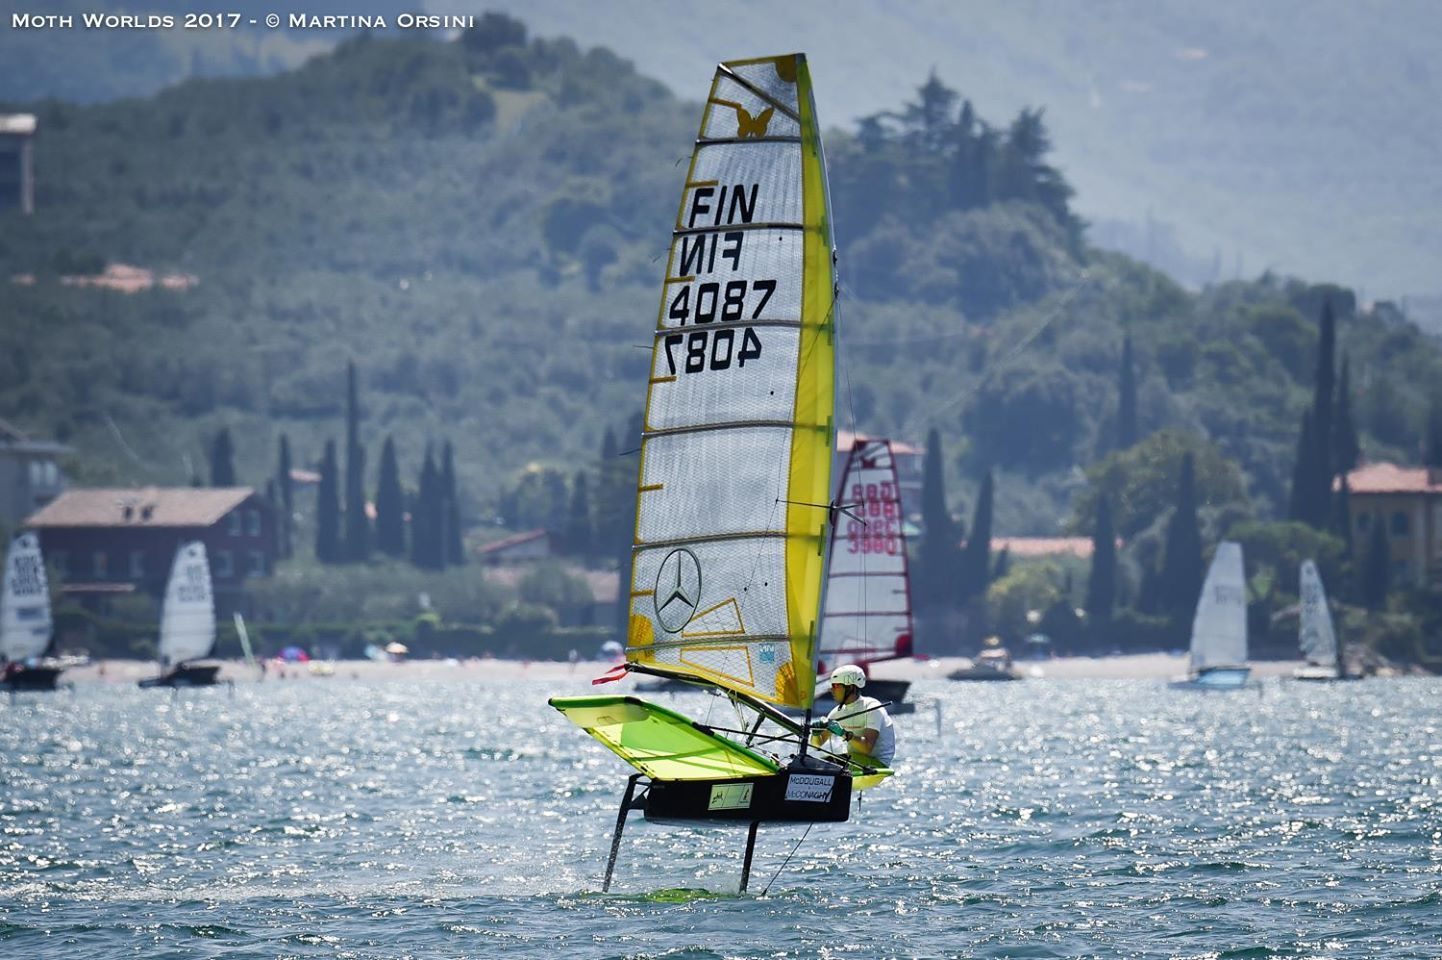 Finals heating up at Moth Worlds